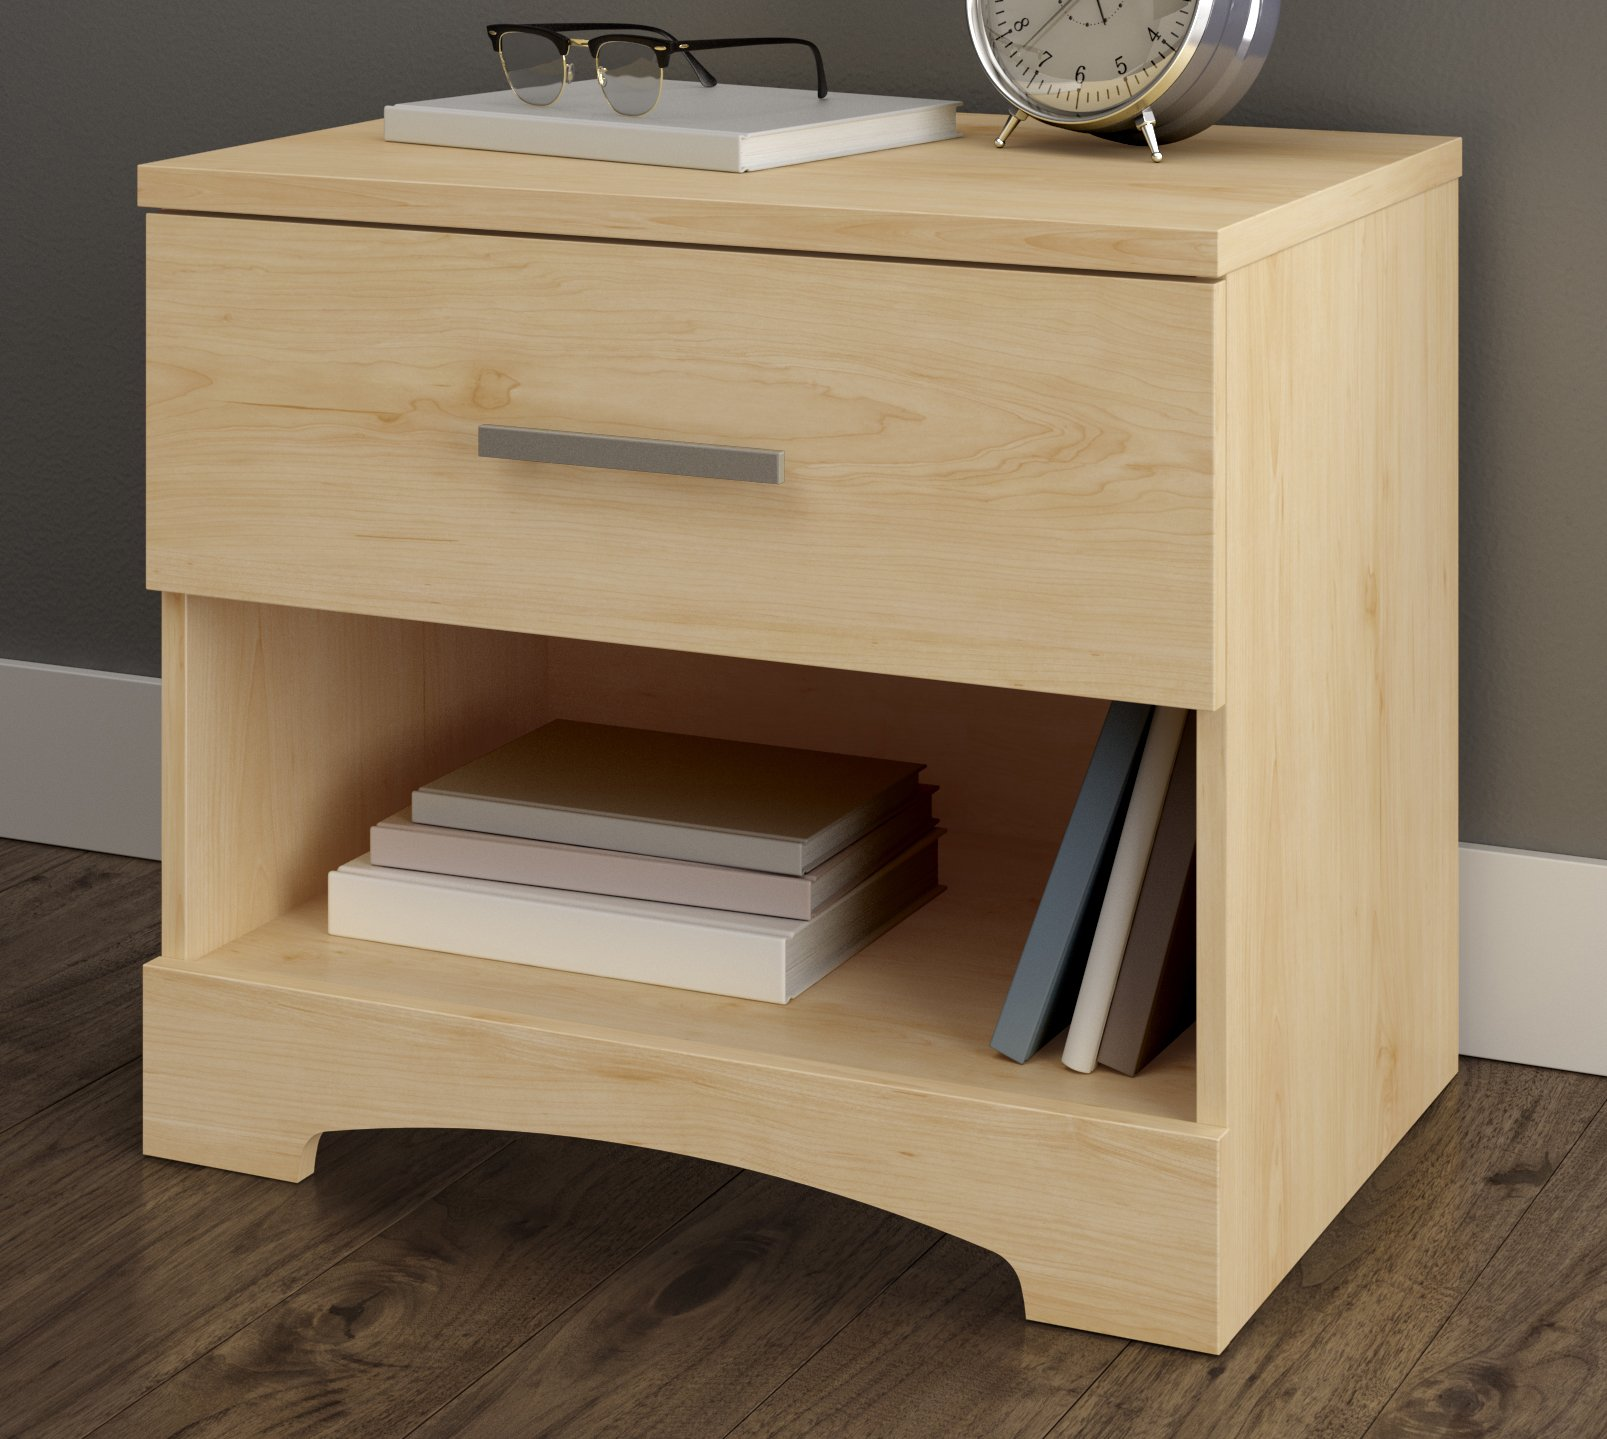 South Shore Gramercy 1-Drawer Nightstand, Natural Maple with Metal Handle